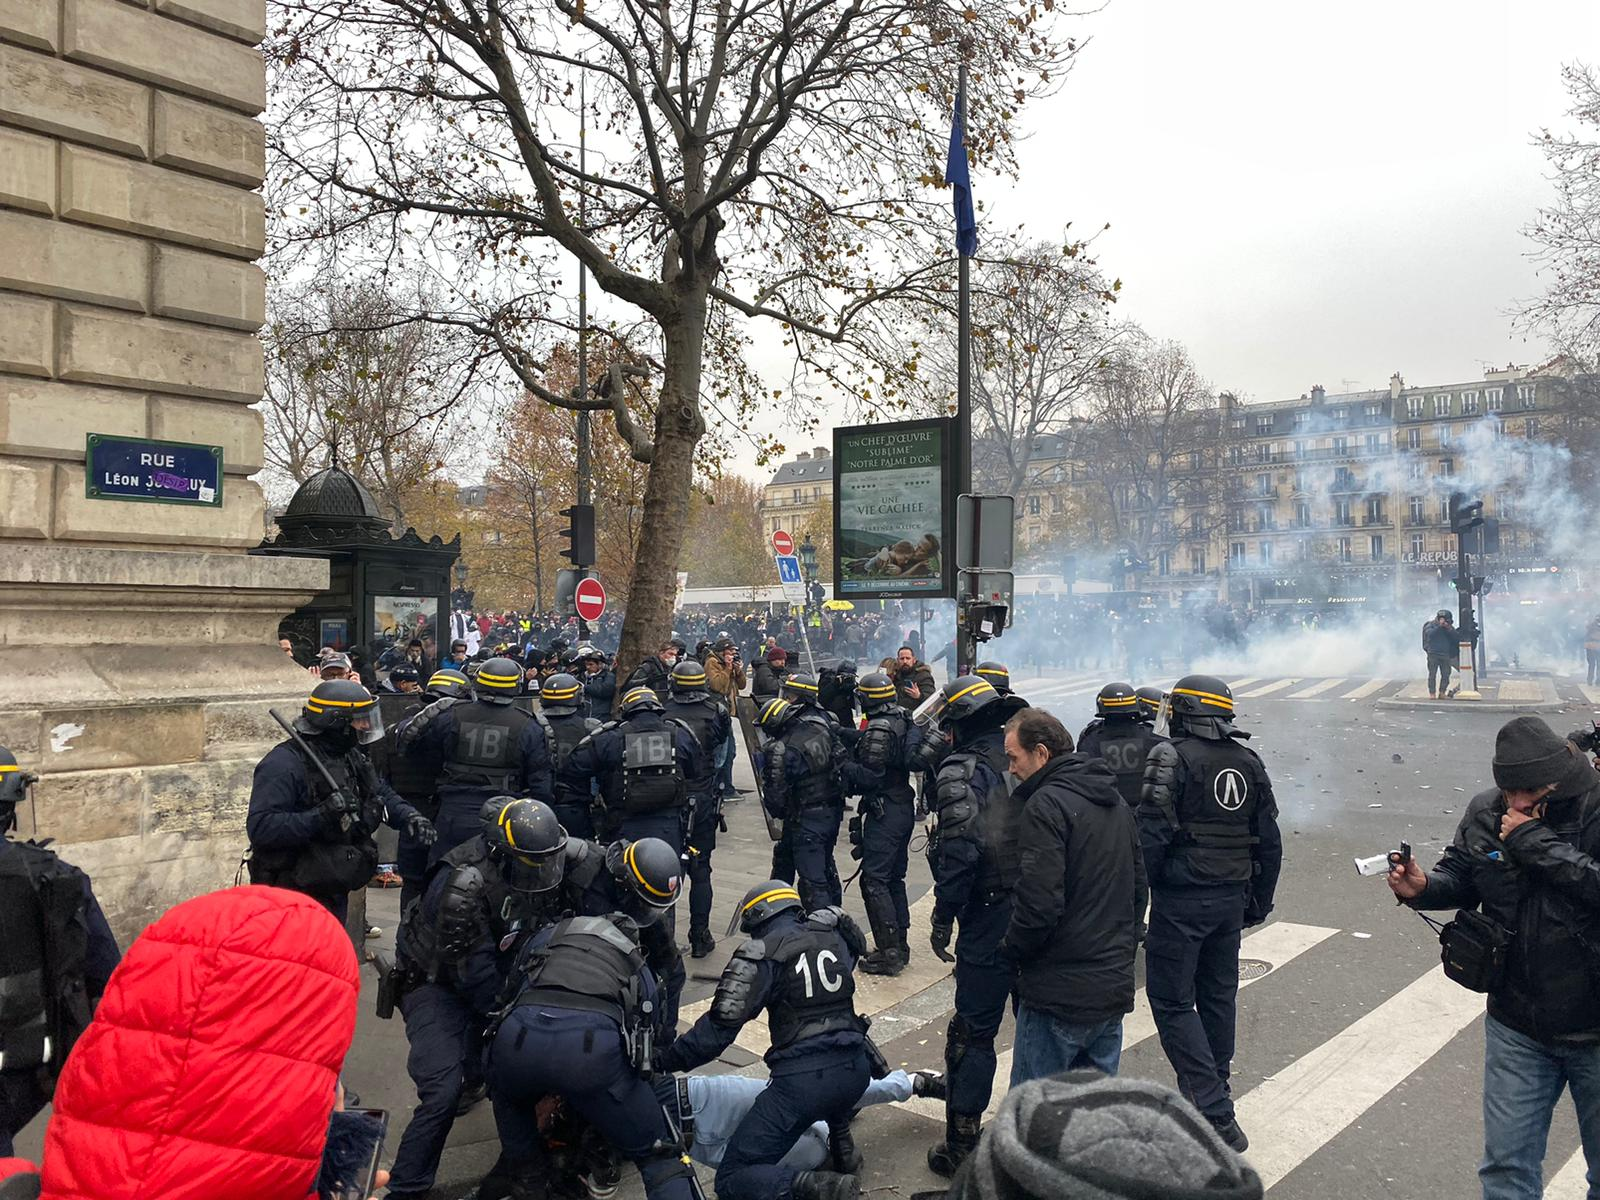 Police deployed tear gas in an attempt to disperse protesters.